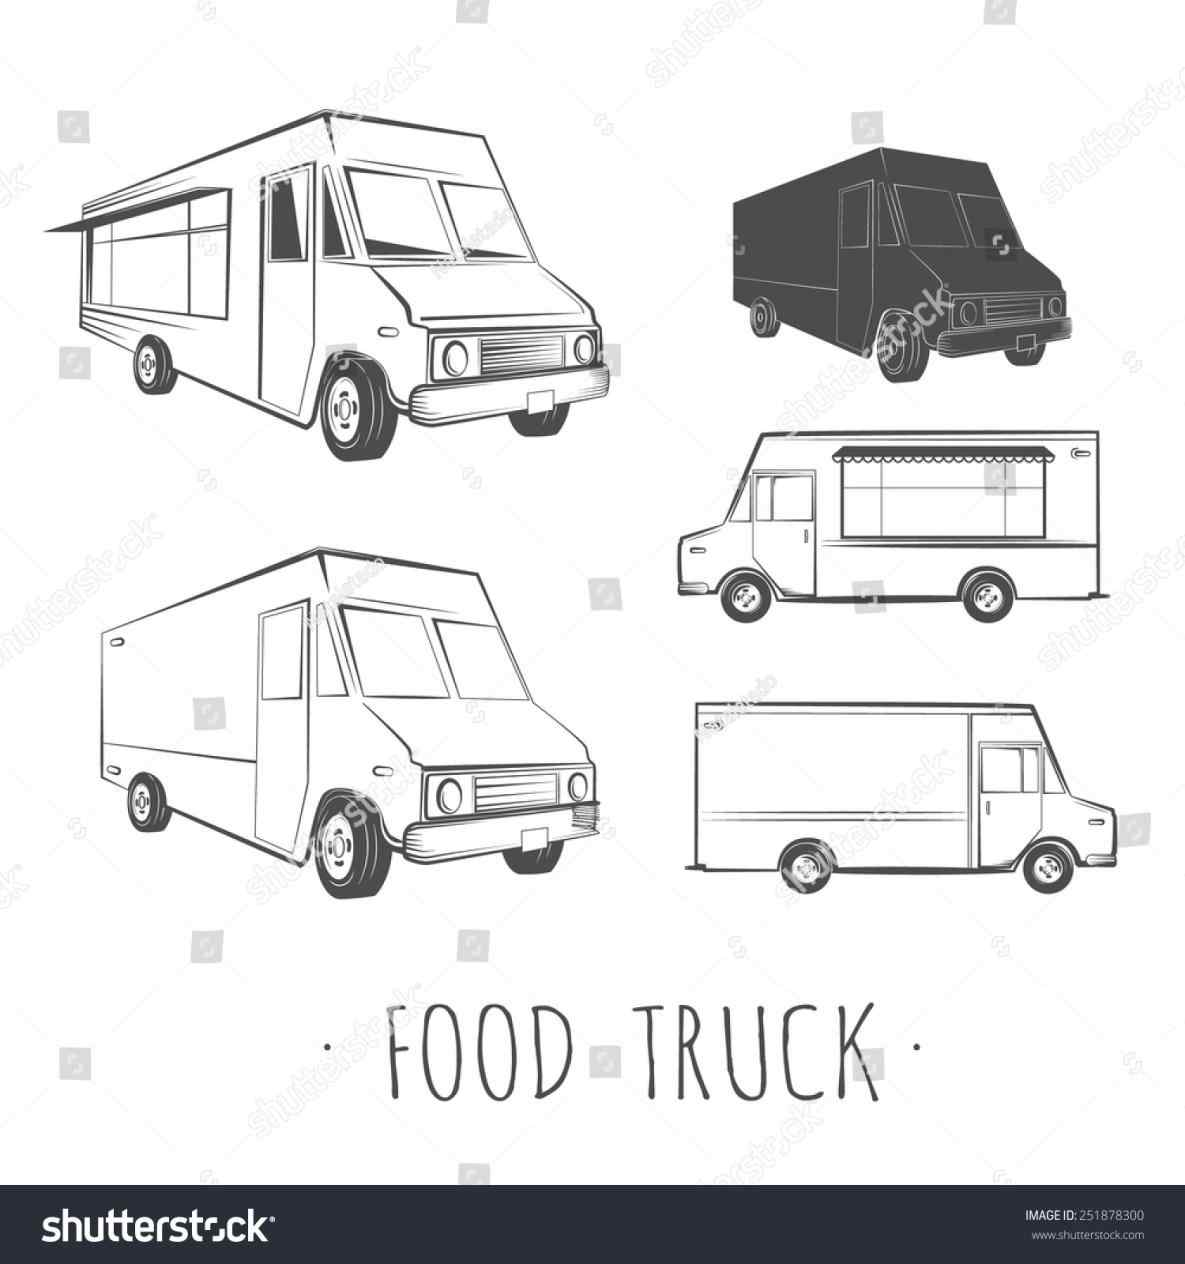 1185x1264 The Images Collection Of Images Food Truck Template Vector For